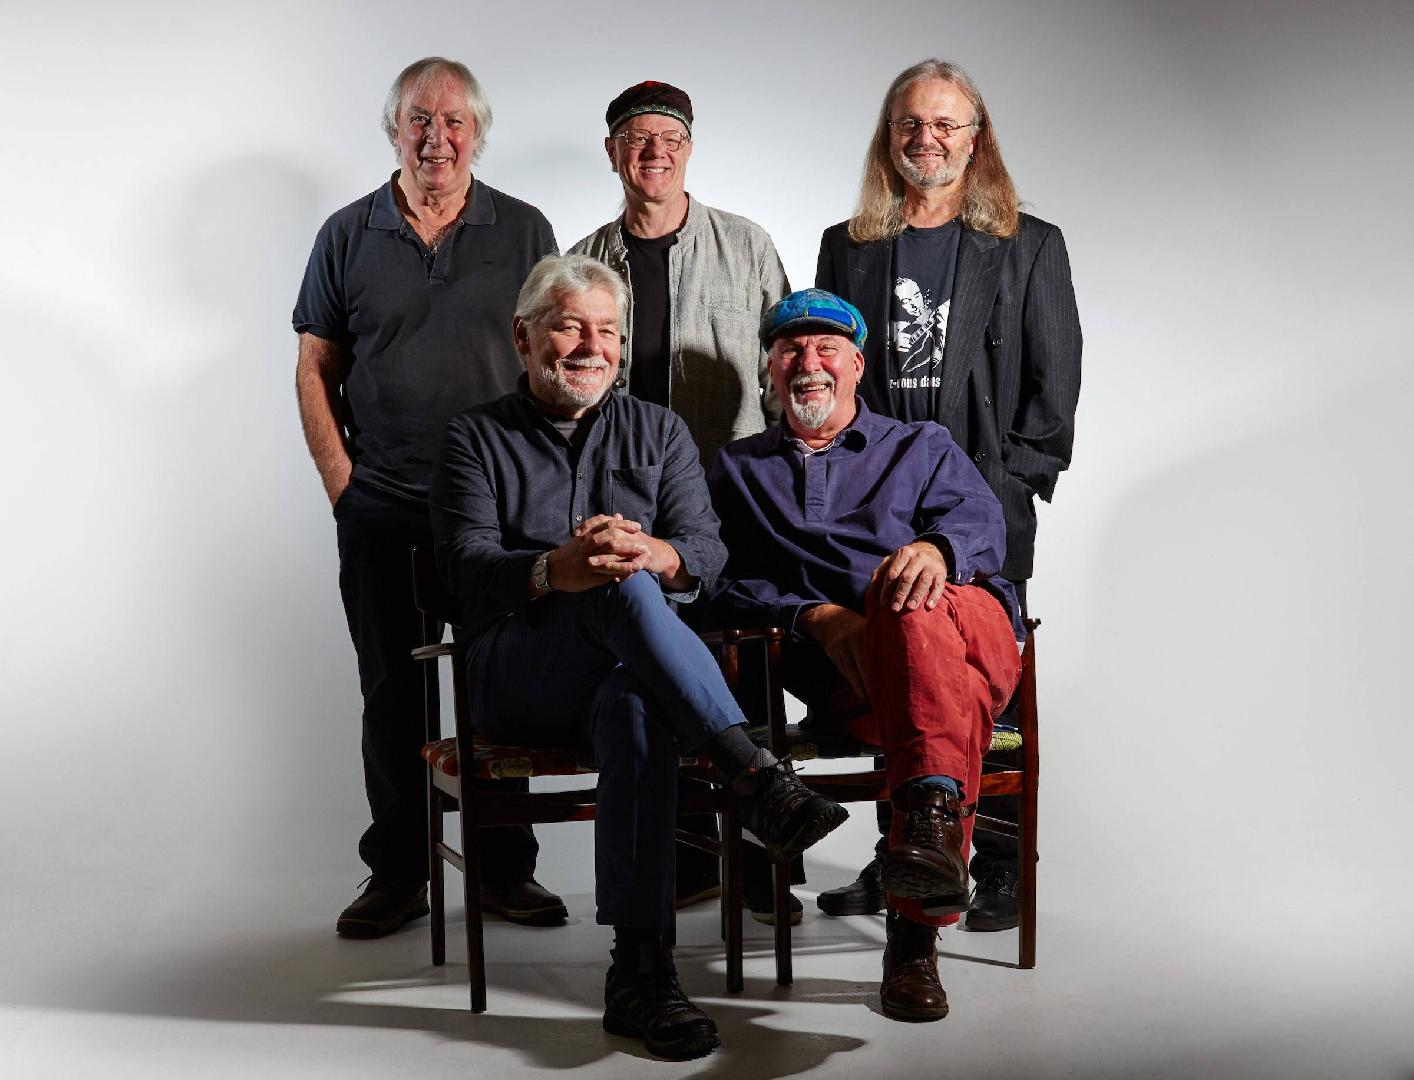 Fairport Convention | The Lowry Theatre